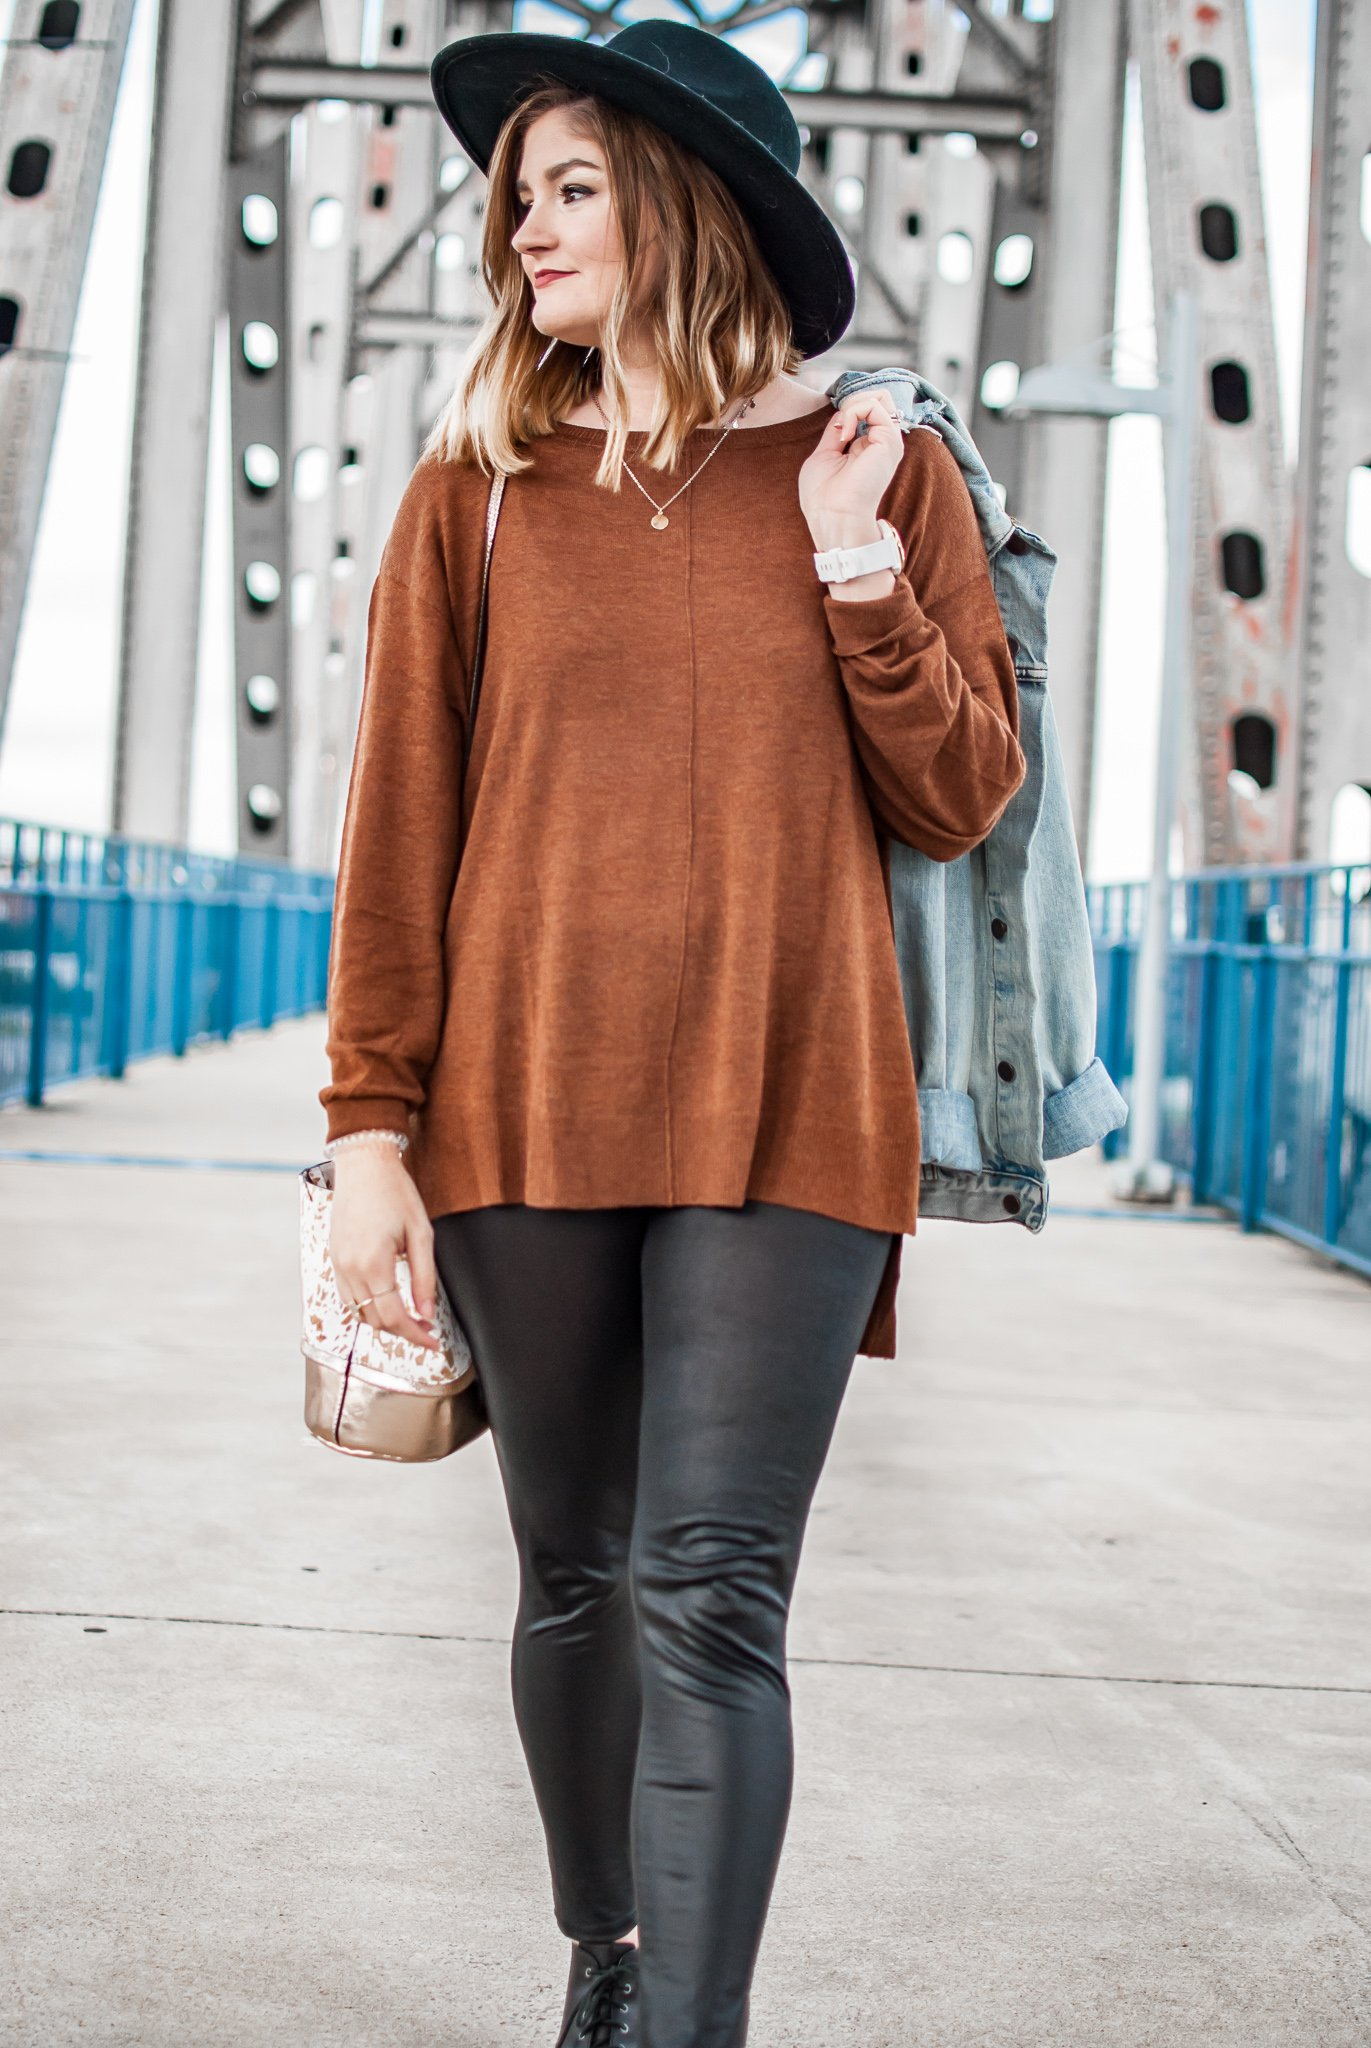 H&M Sweater Roundup